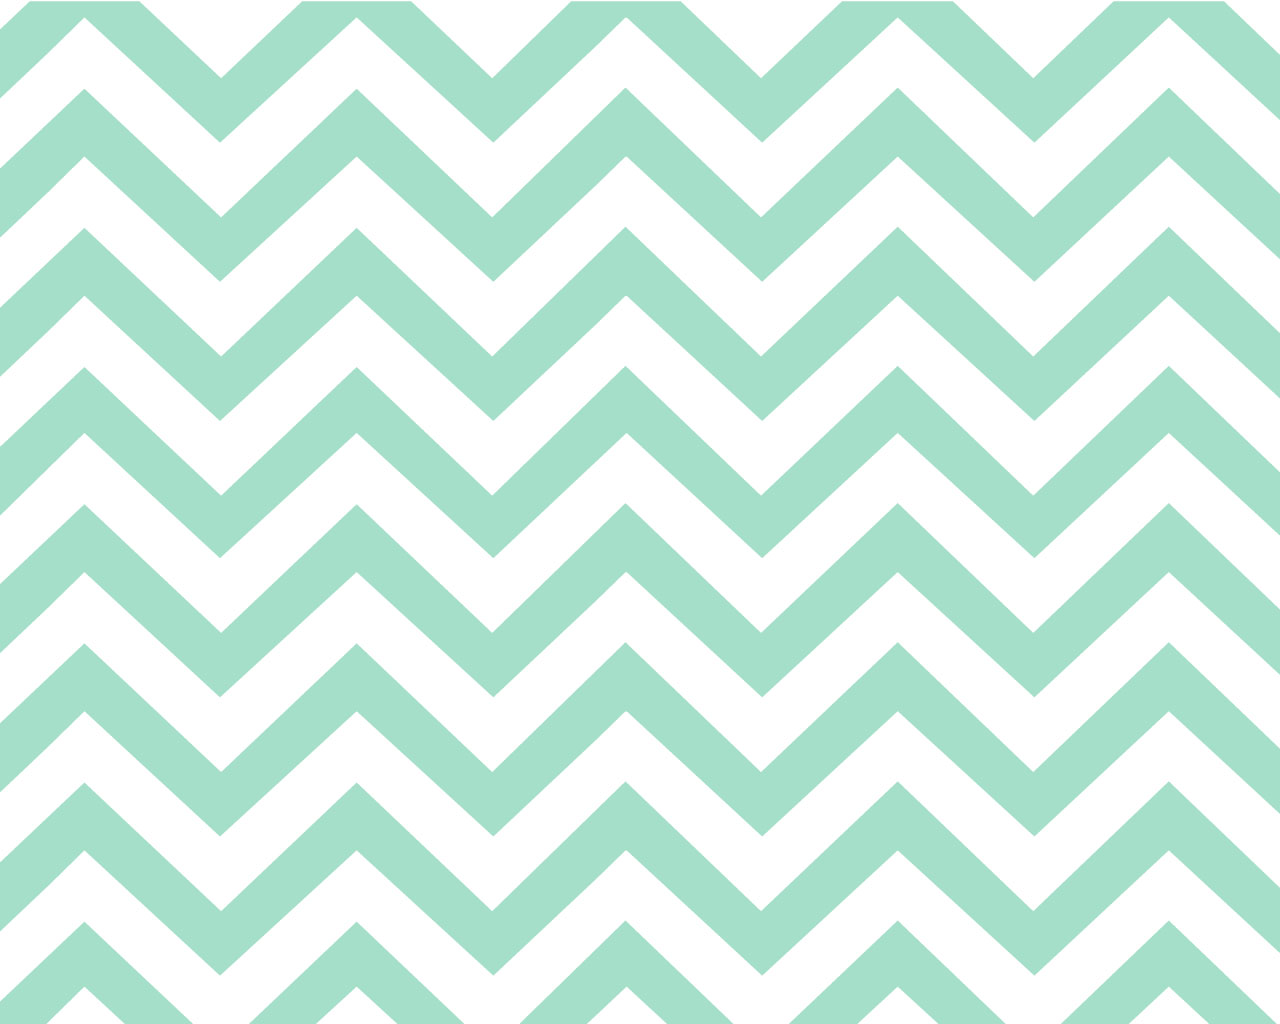 iheartprintsandpatterns: Chevron Wallpapers